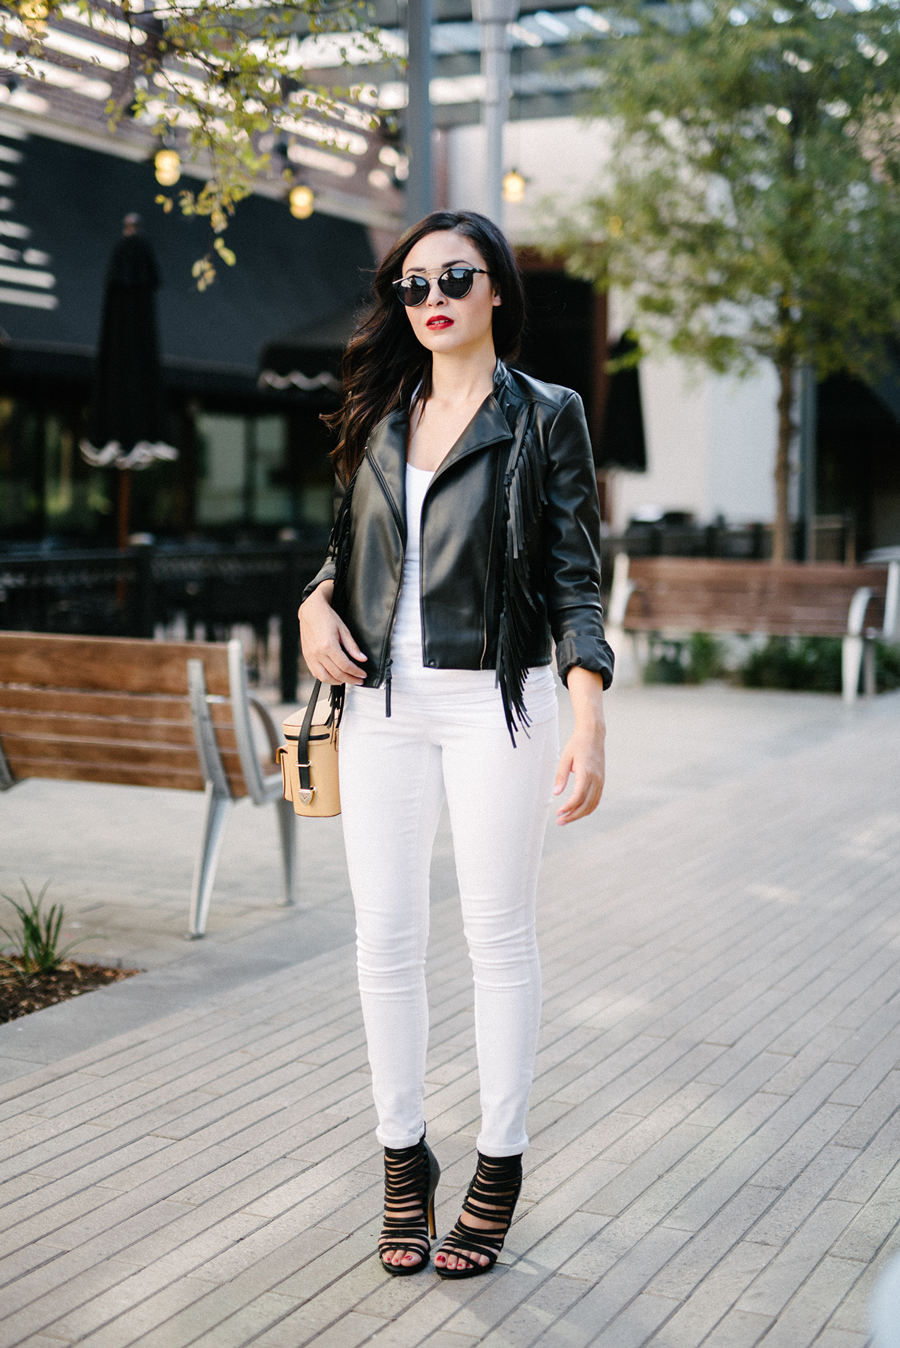 FIXIN-TO-THRILL-EXPRESS-FRINGE-LEATHER-JACKET-REBECCA-MINKOFF-TREND-CARLOS-BARRON-FALL-OCTOBER-ATX-AUSTIN-STYLE-BLOG-FW15-TRENDY-CHIC-GLAM-FASHION-TEXAS-9